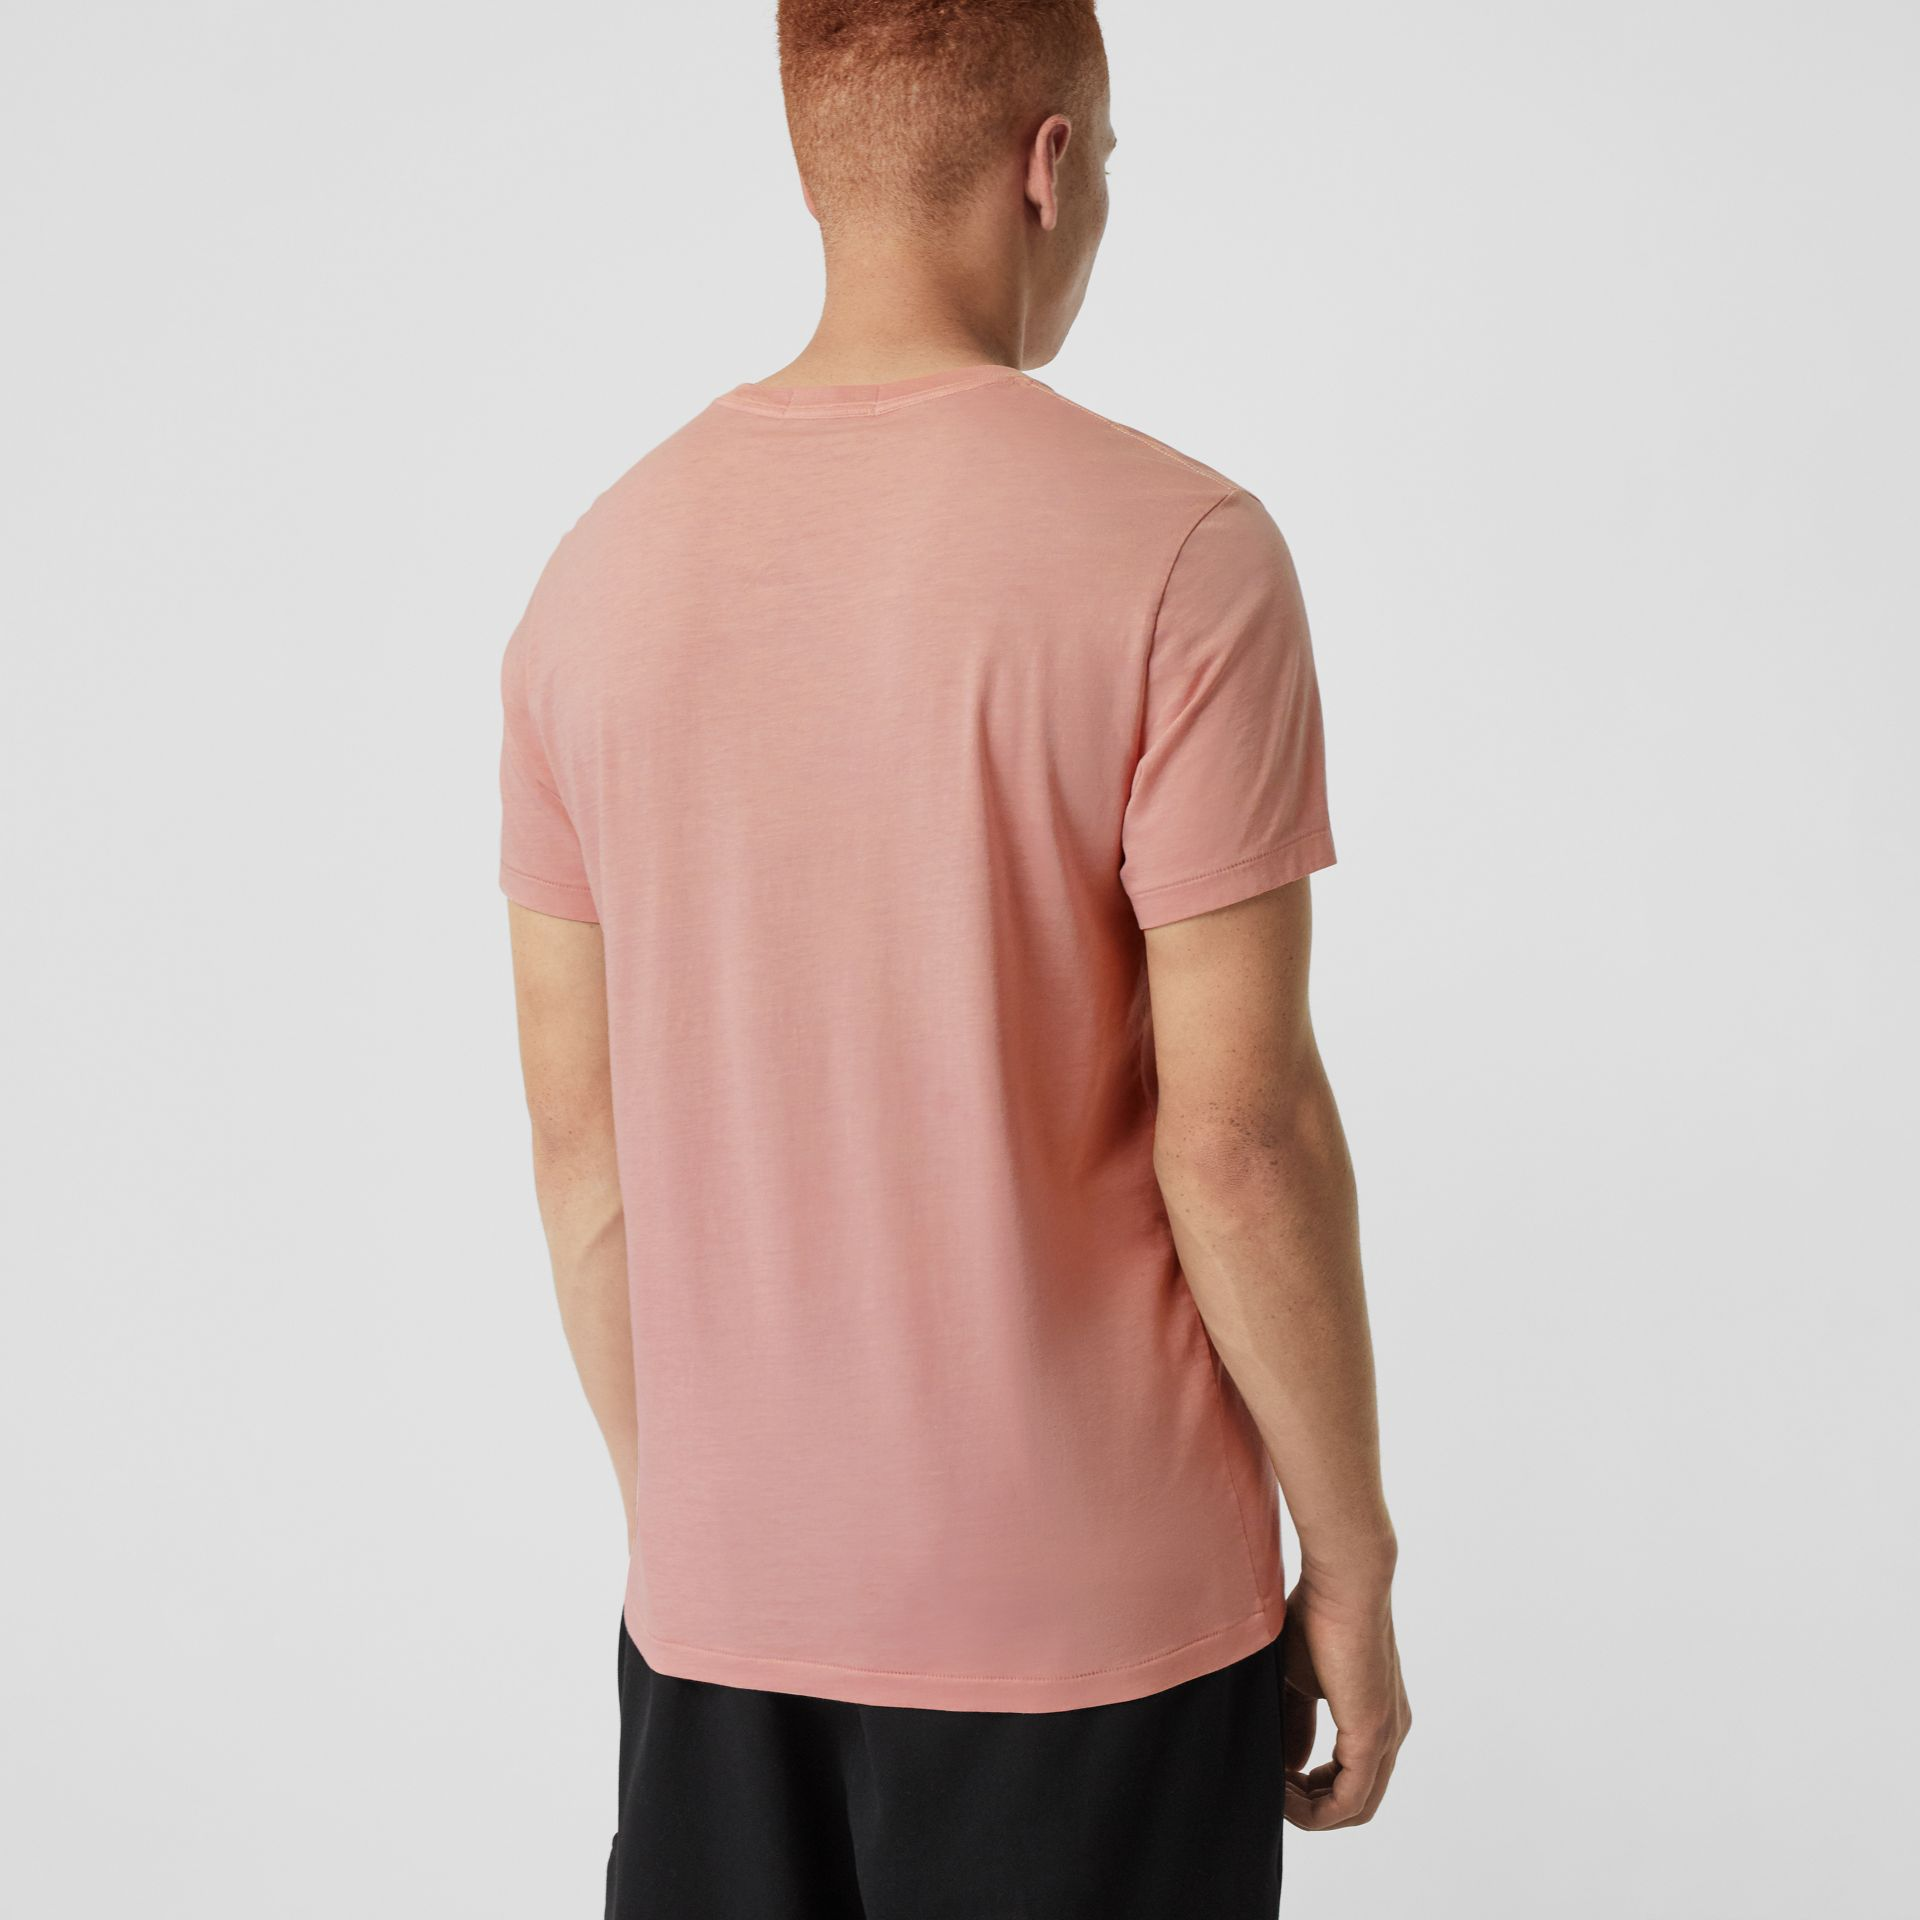 Cotton T-shirt in Chalk Pink - Men | Burberry - gallery image 2